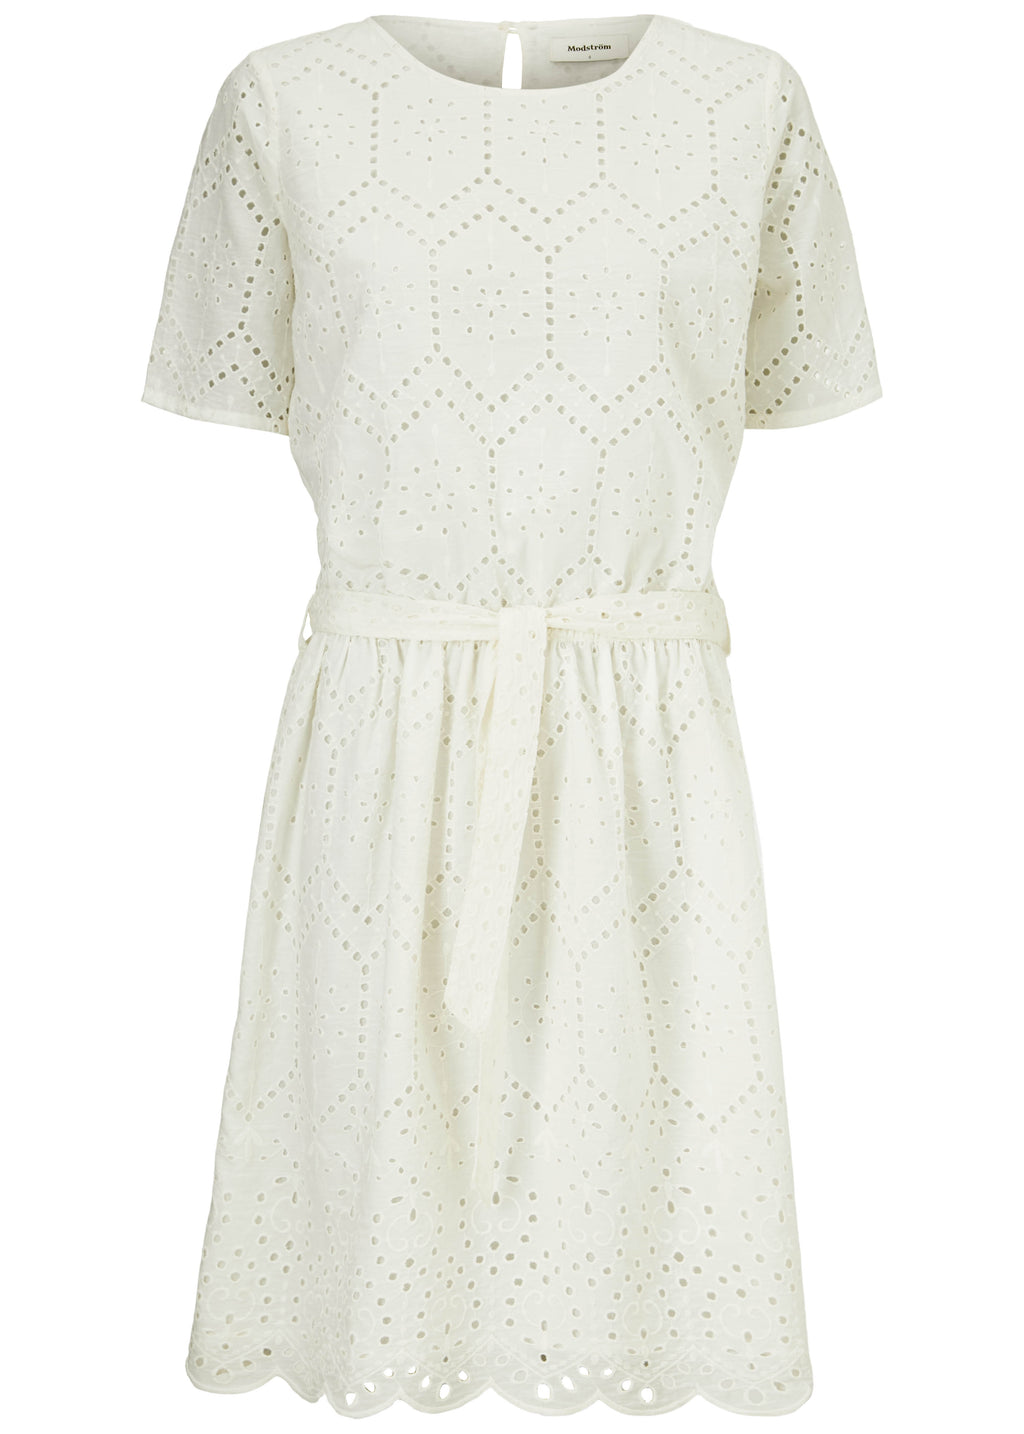 Modström Cassiopeia Dress Off White - Mojo Independent Store